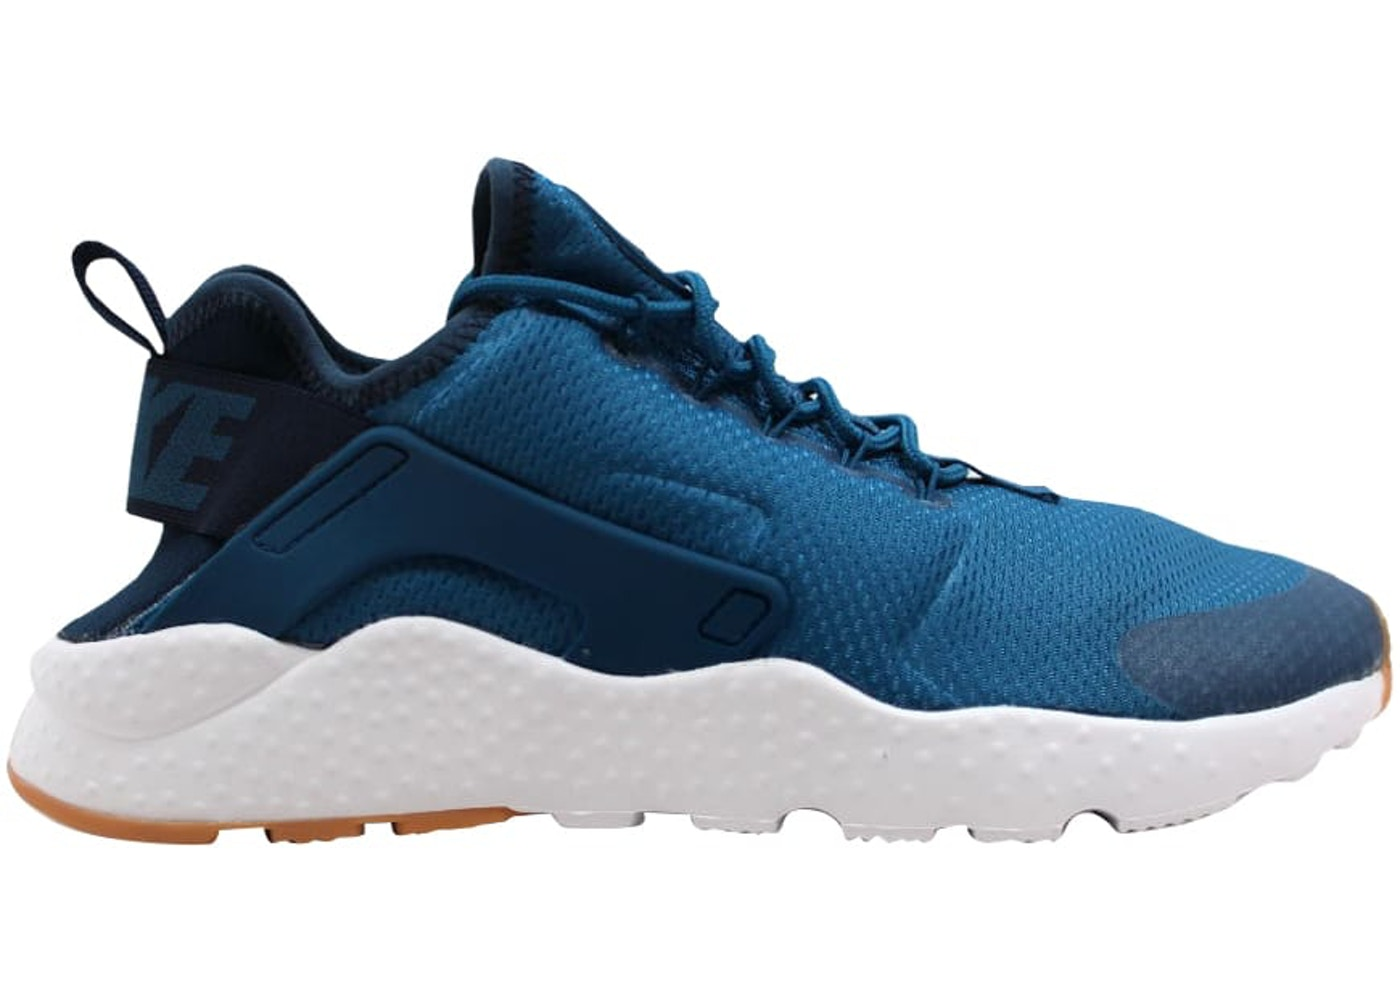 huge selection of 196cb eabd8 Nike Air Huarache Run Ultra Industrial Blue Midnight Navy (W ...